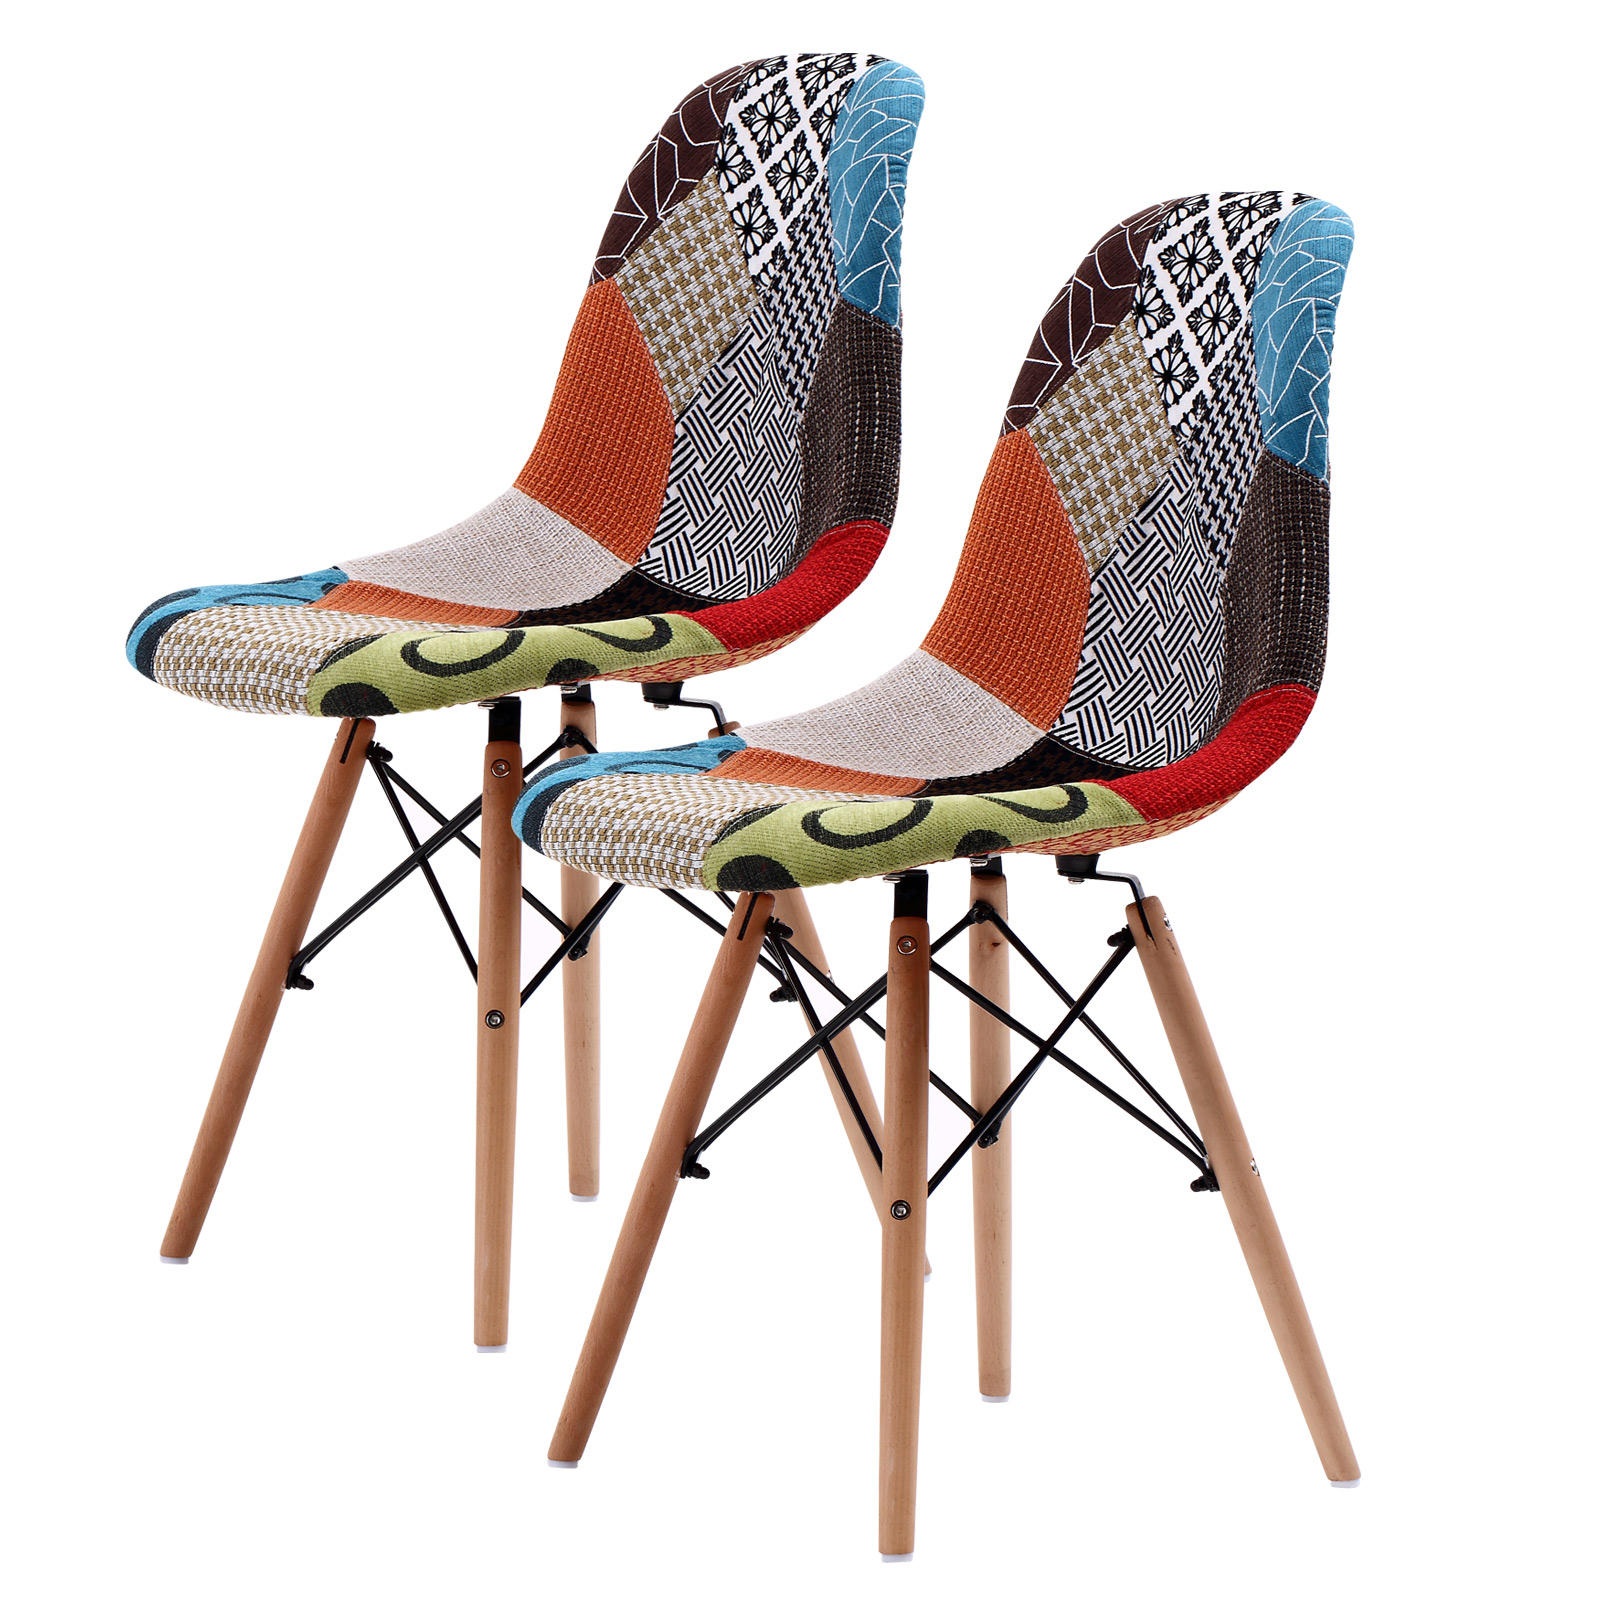 Replica Eames DSW Dining Chair - MULTI-COLOUR X2